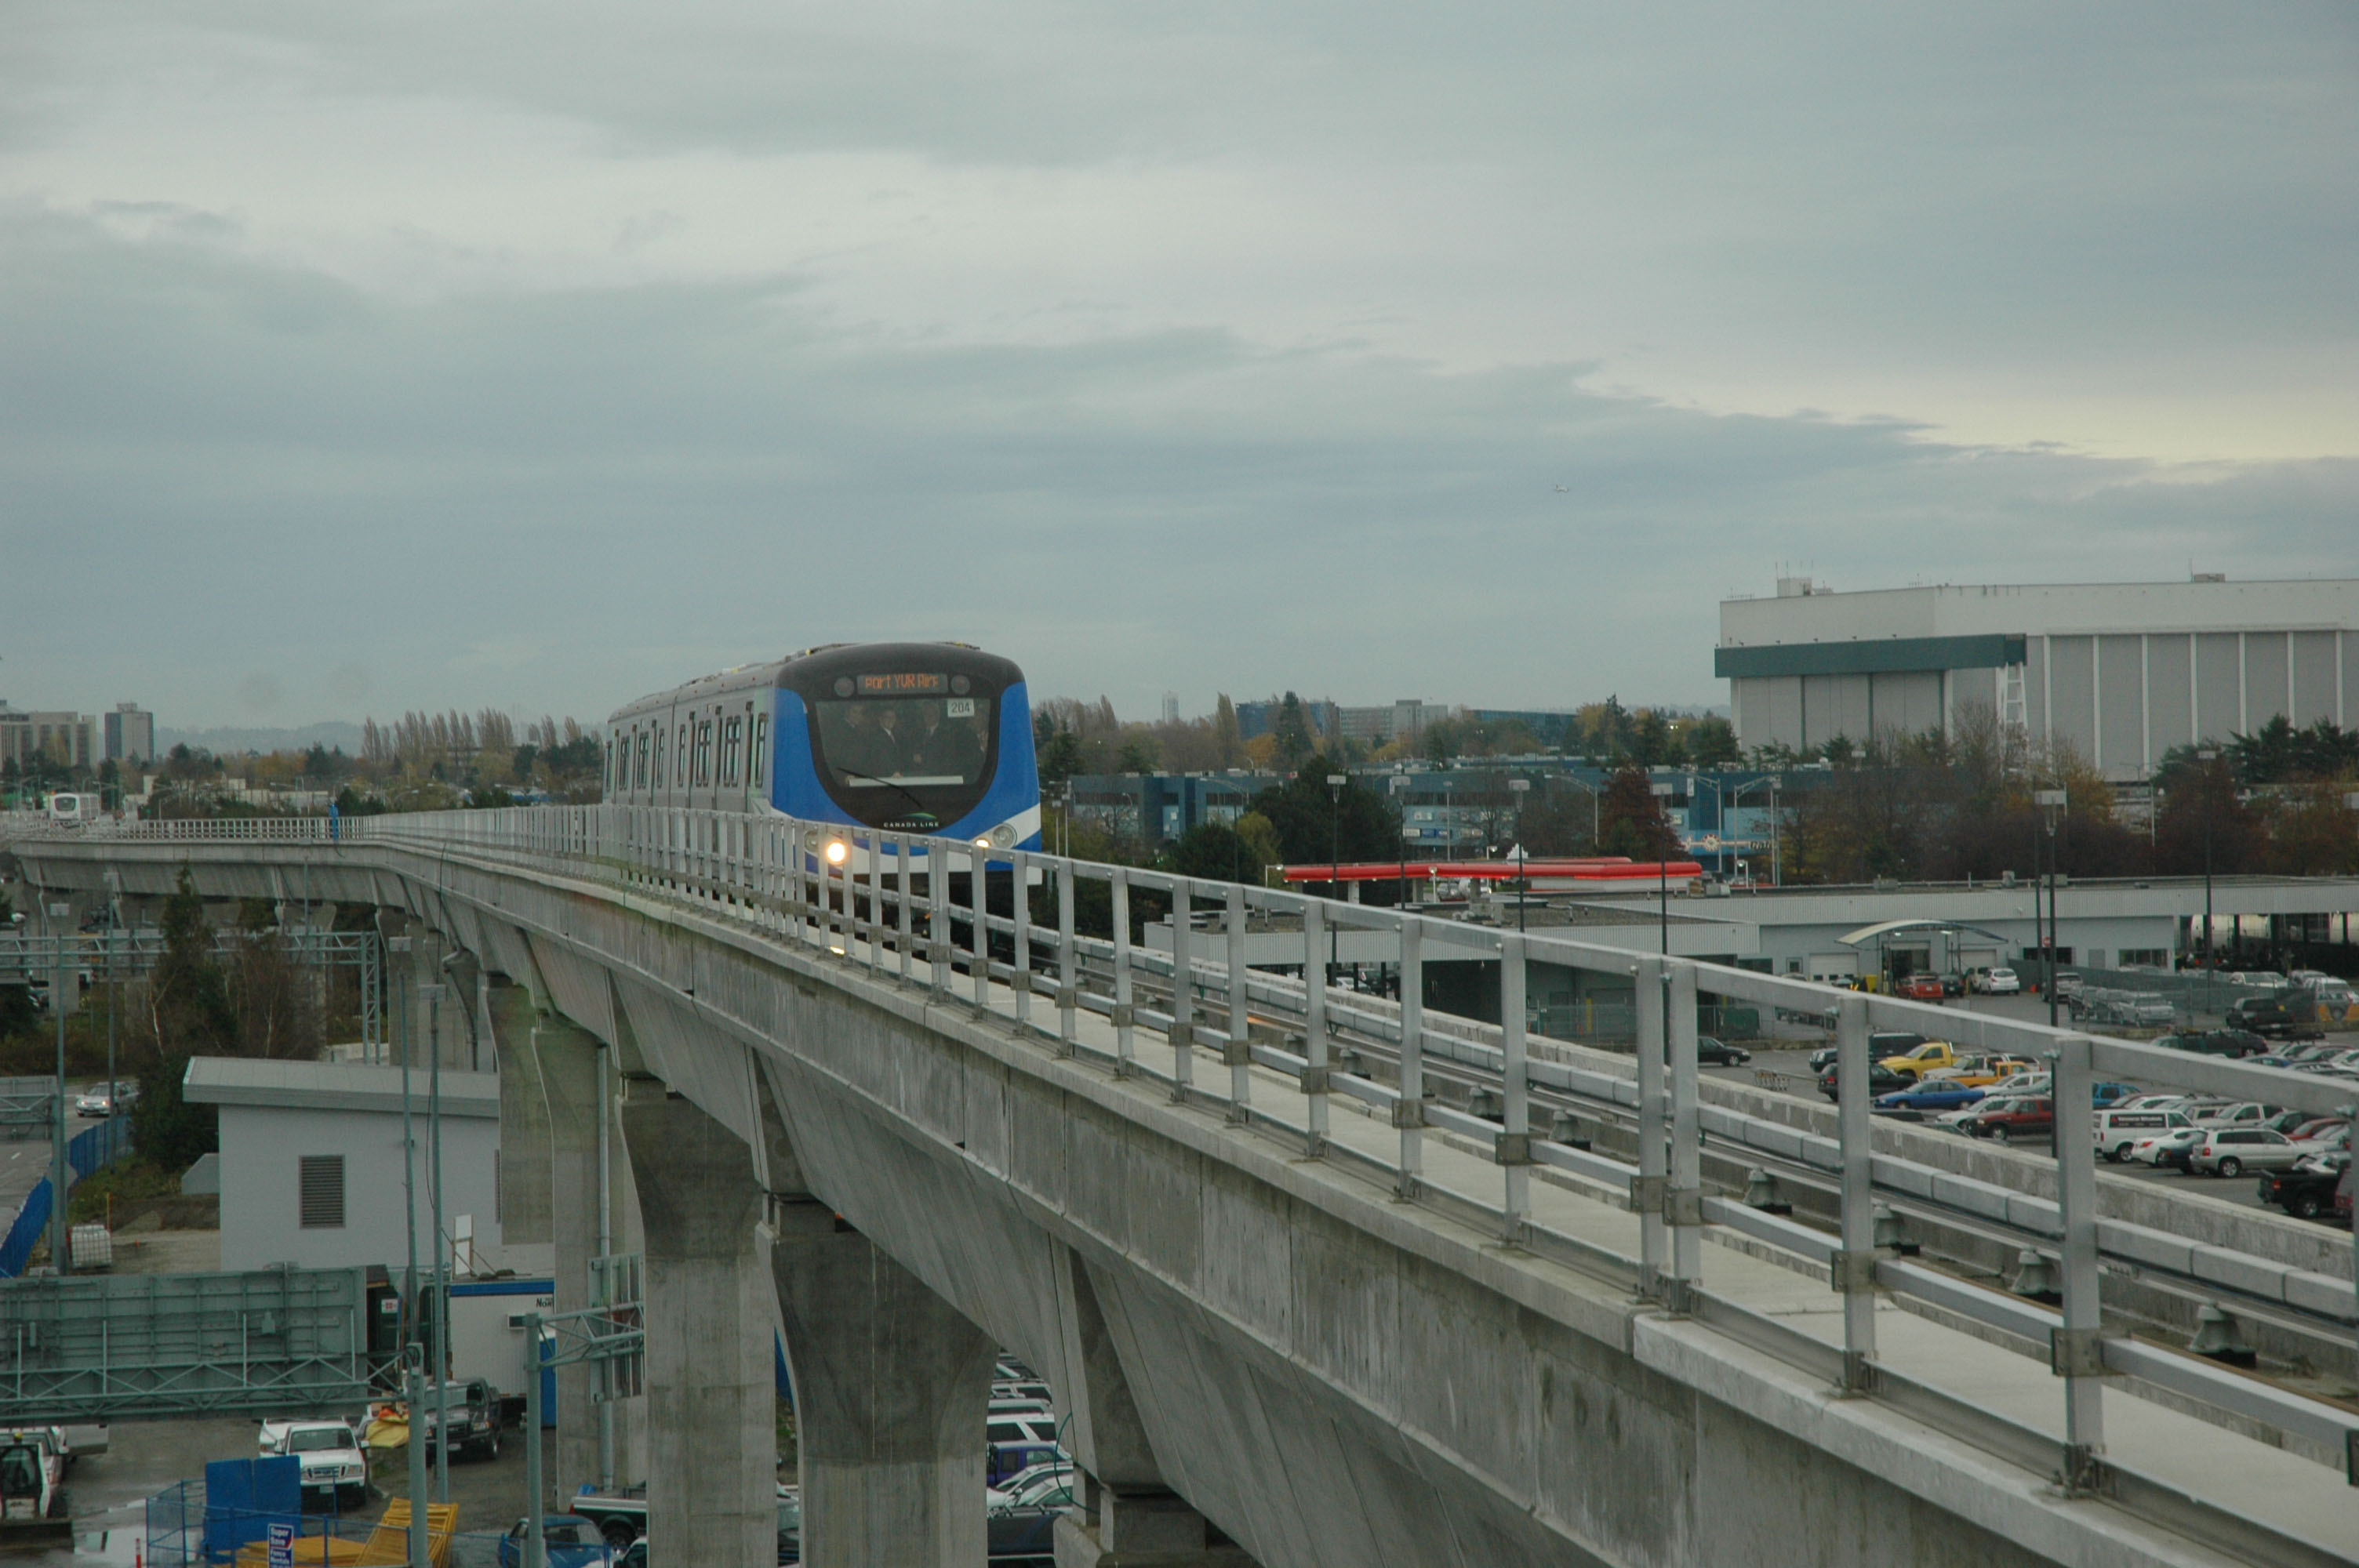 The same Canada Line train a bit earlier in its journey.